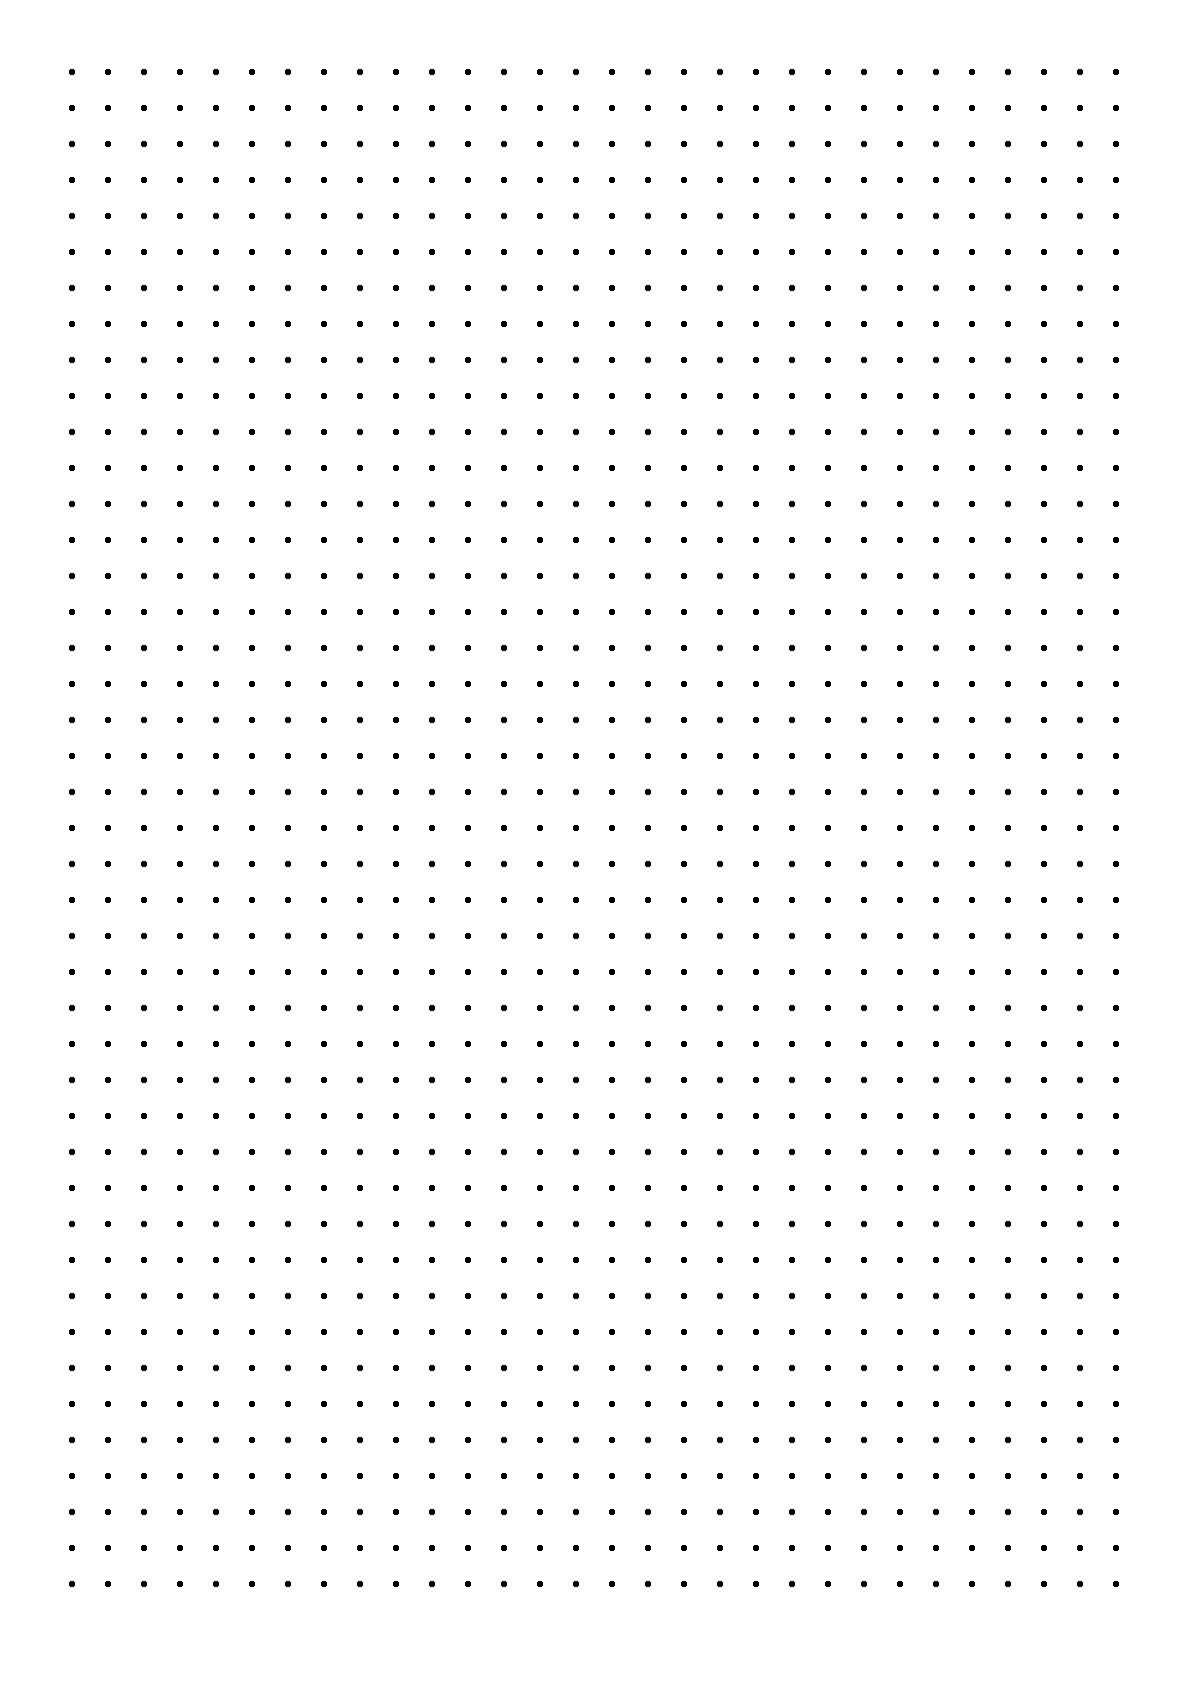 dot paper with four dots per inch on a4